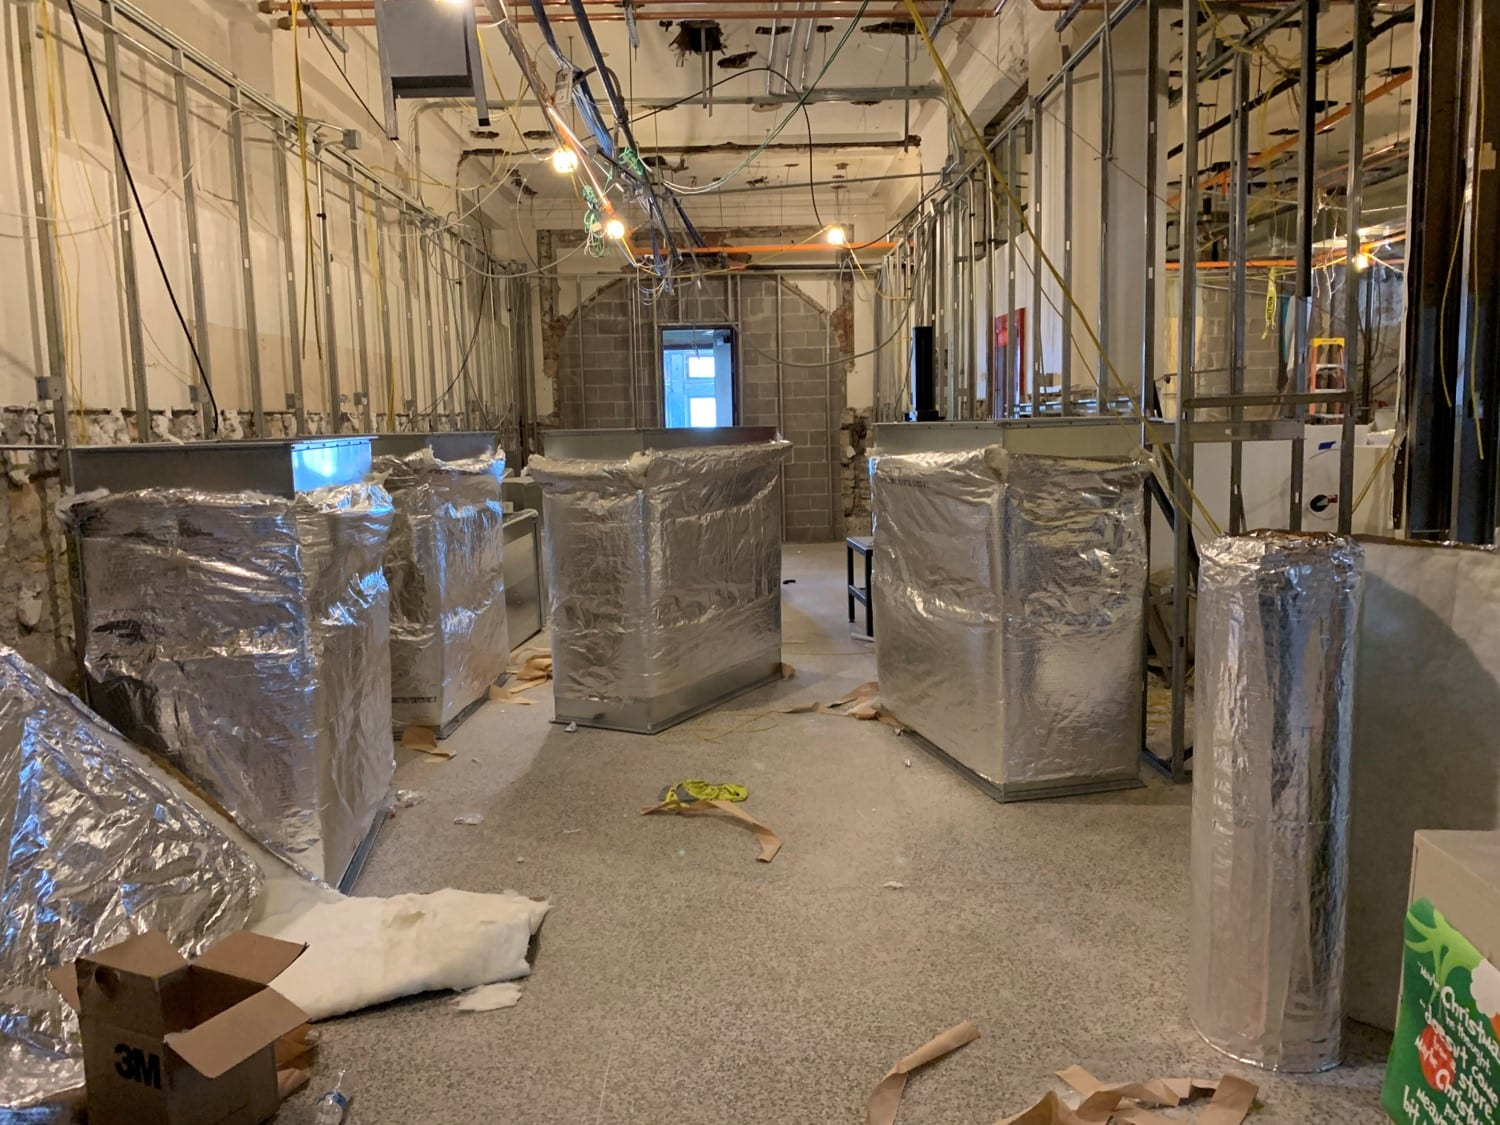 A room with a lot of exposed metal wall framing is filled with give large rectangular metal pieces of ductwork wrapped in metallic silver insulation.